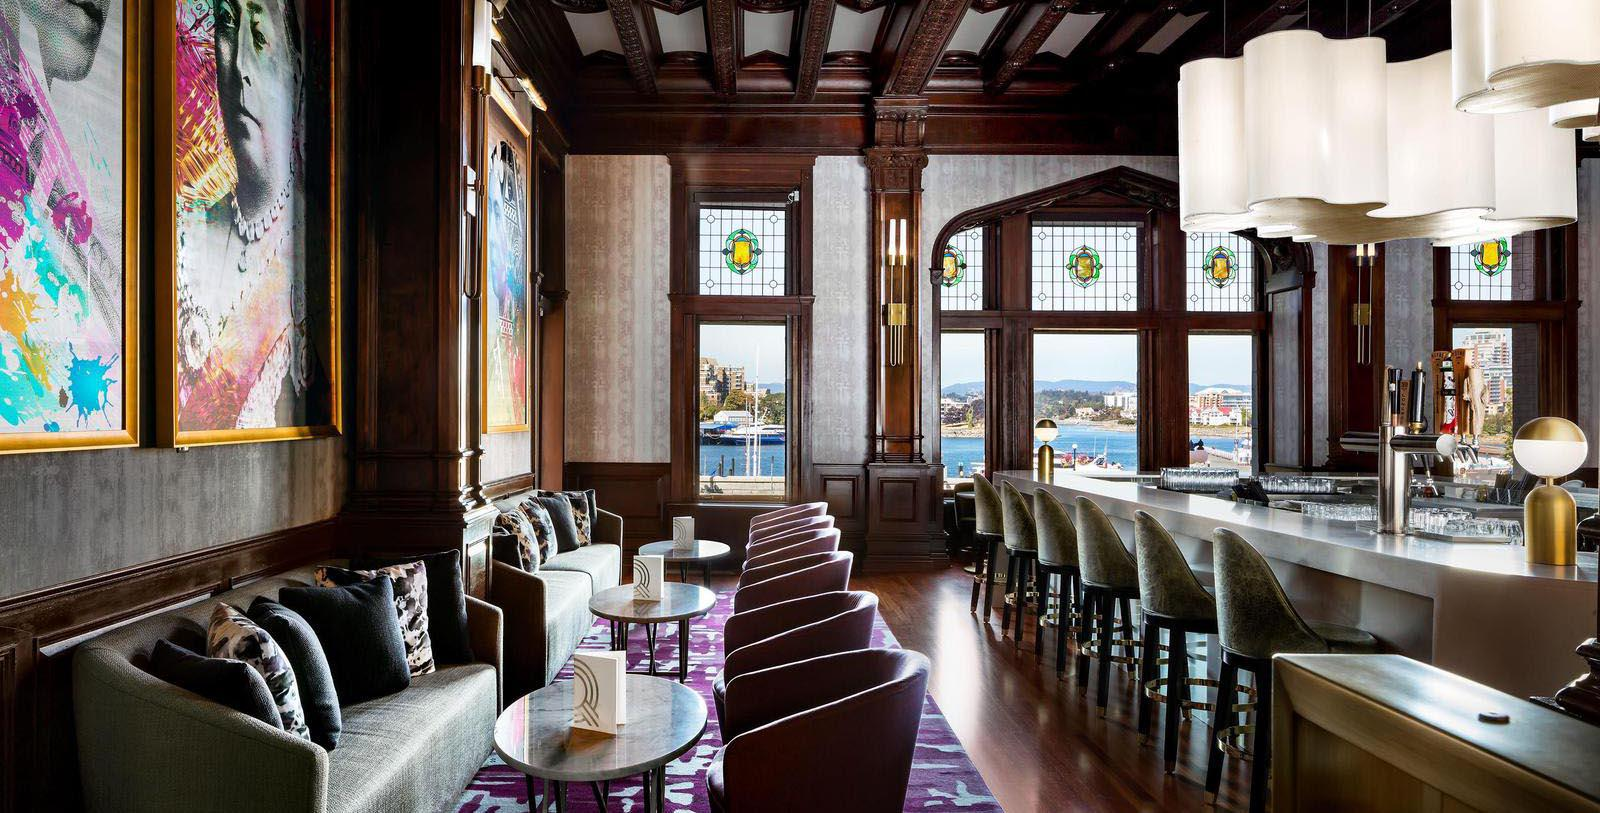 Image of Q bar Fairmont Empress, 1908, Member of Historic Hotels Worldwide, in Victoria, British Columbia, Canada, Explore